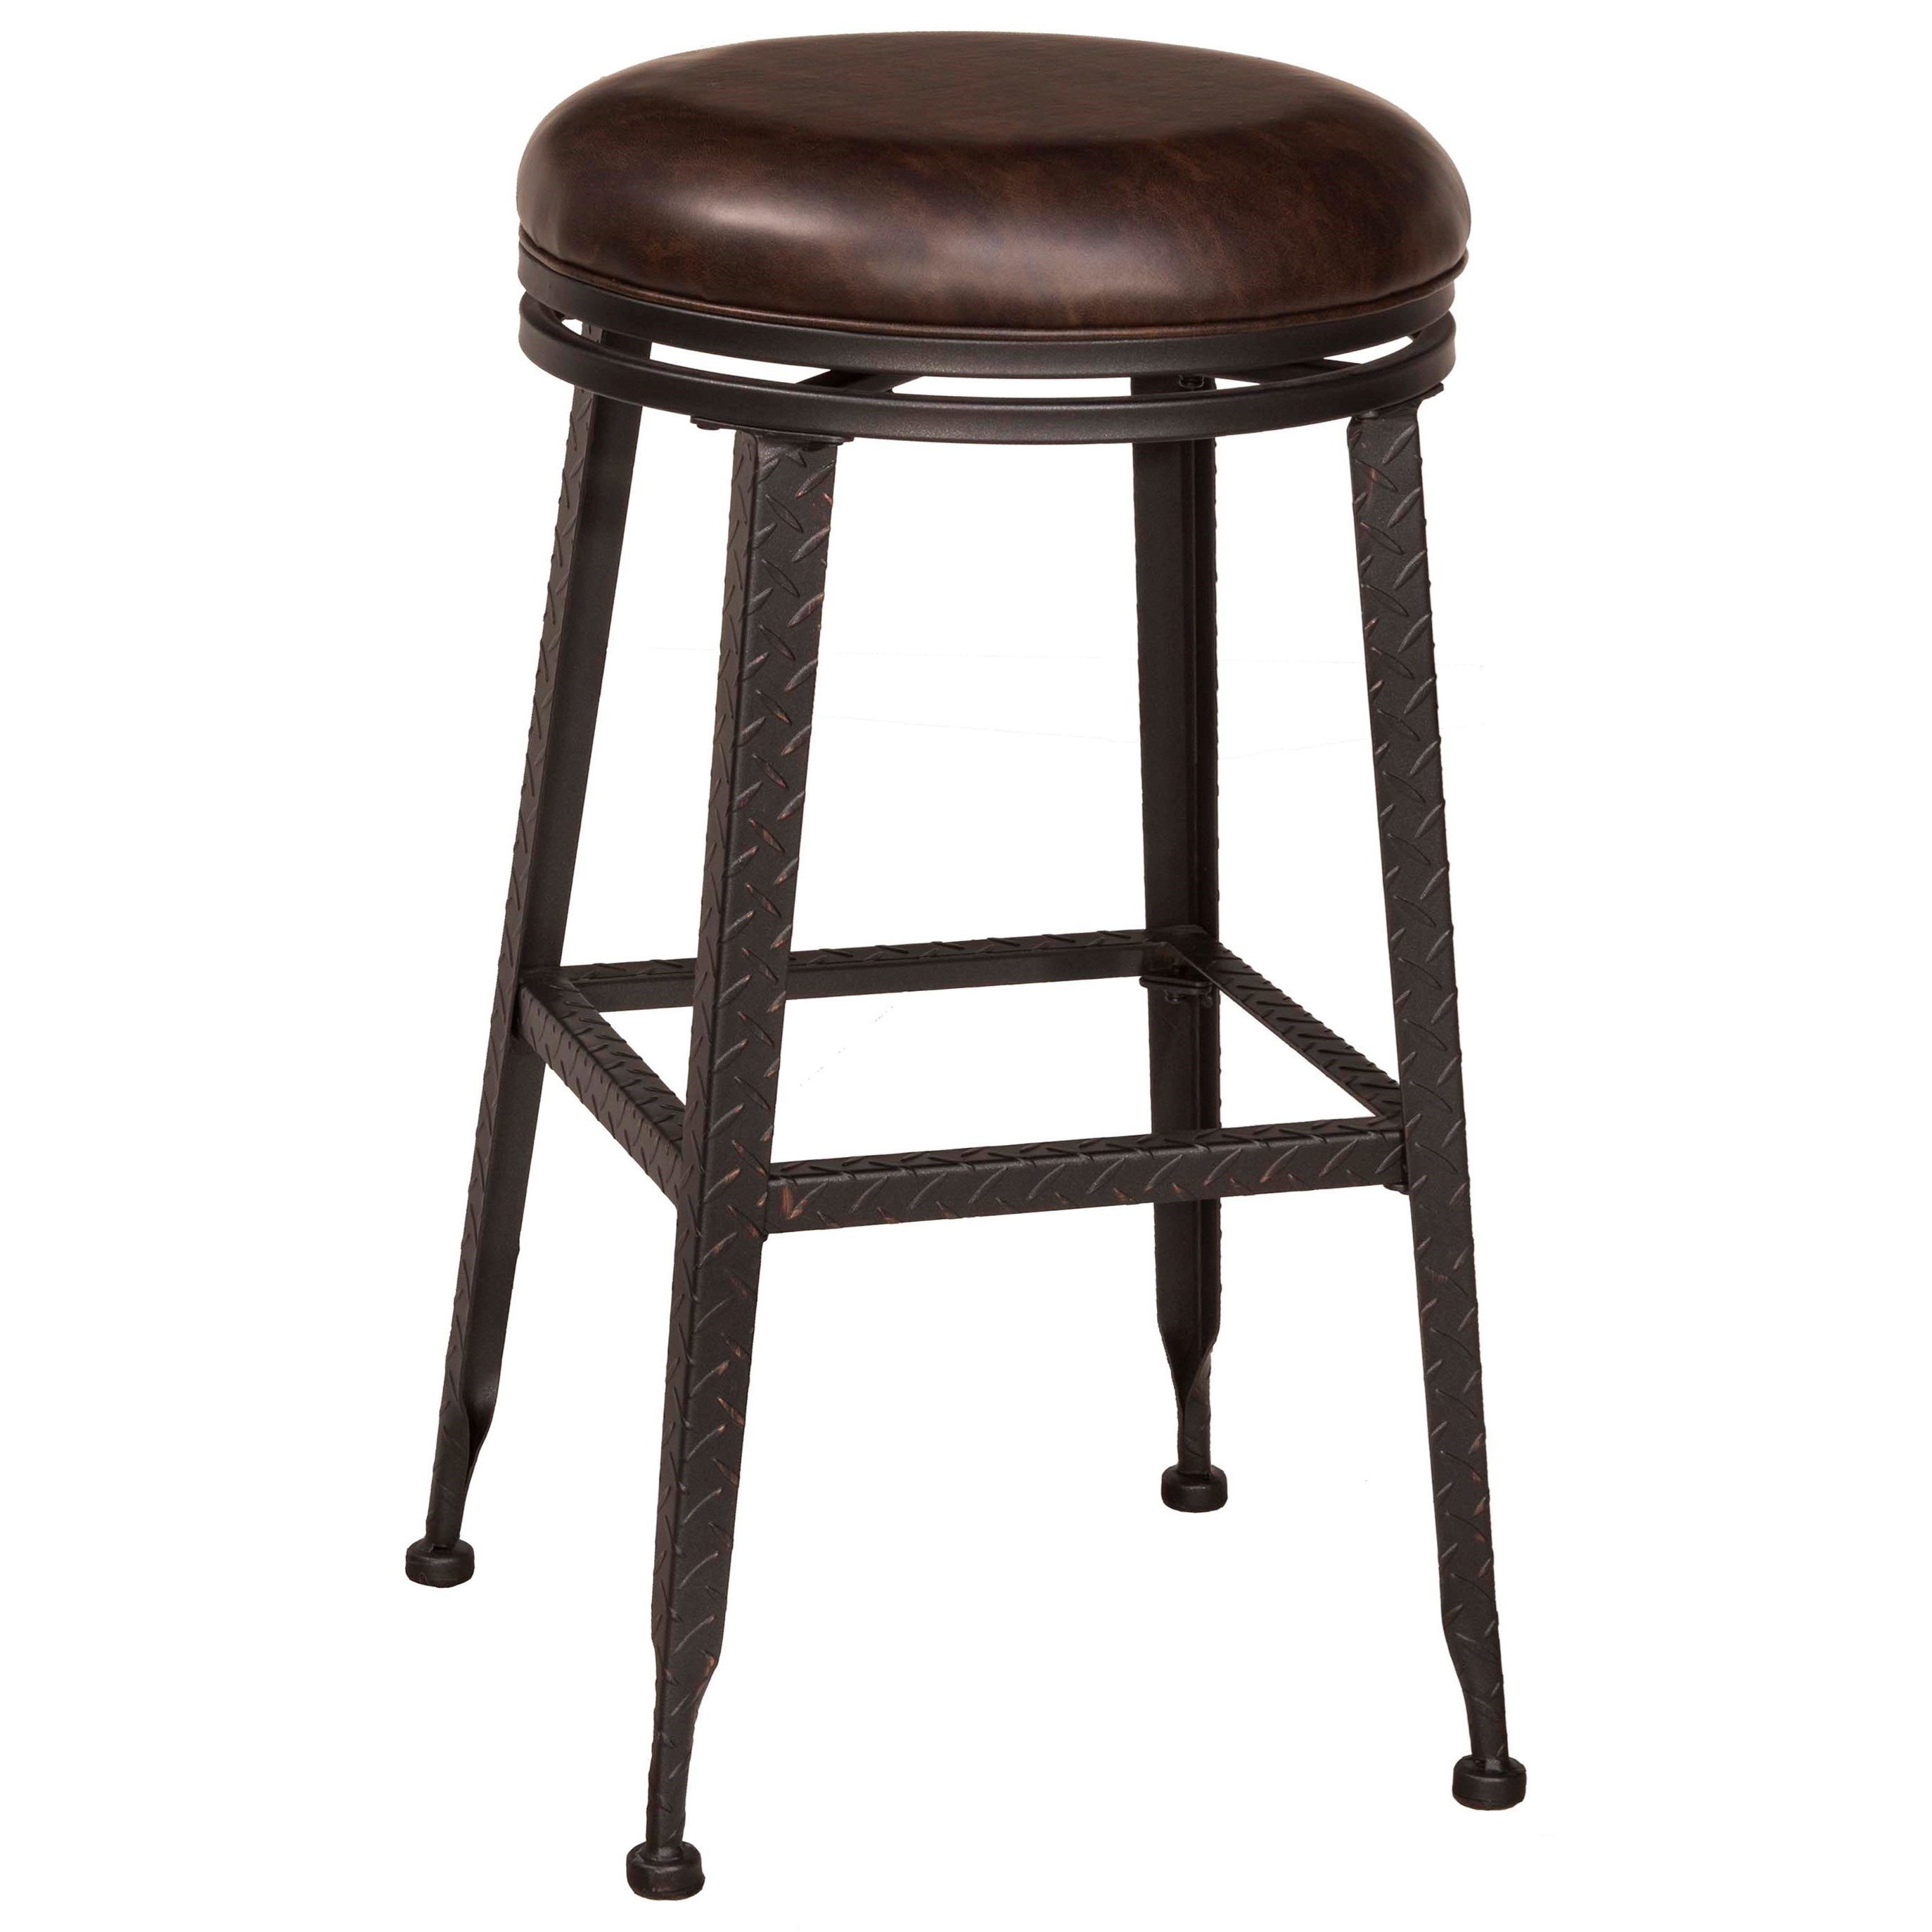 Hillsdale Backless Bar Stools 5793 830 Black Metal With